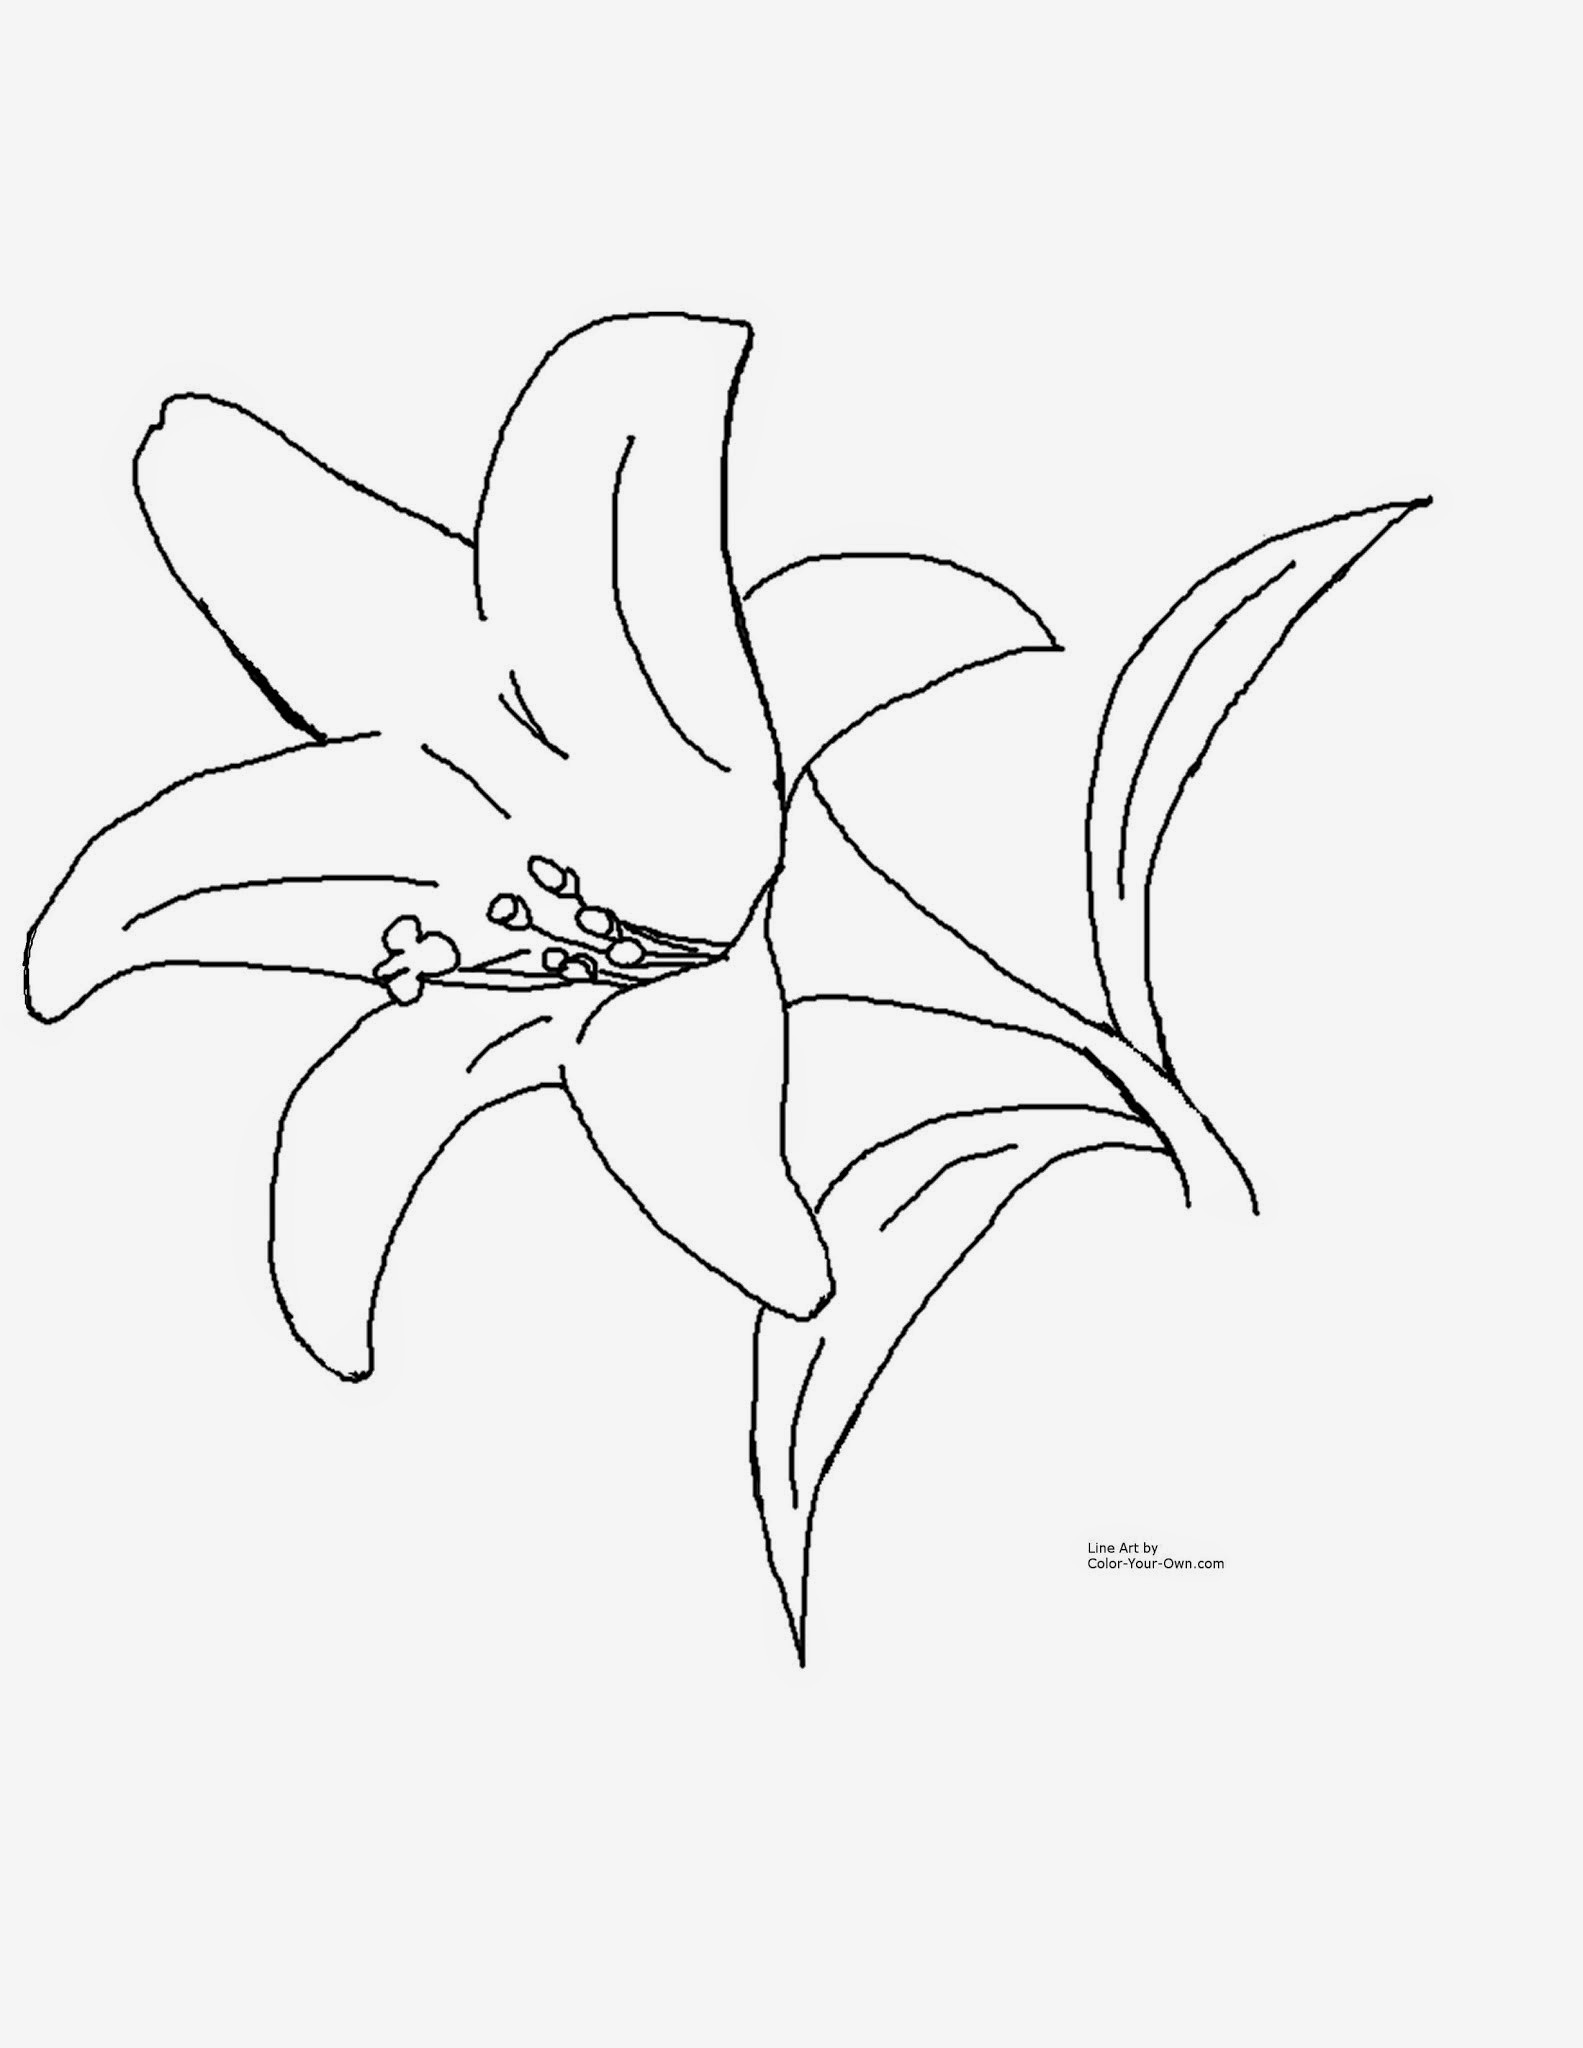 princess tiger lily coloring pages - photo#8